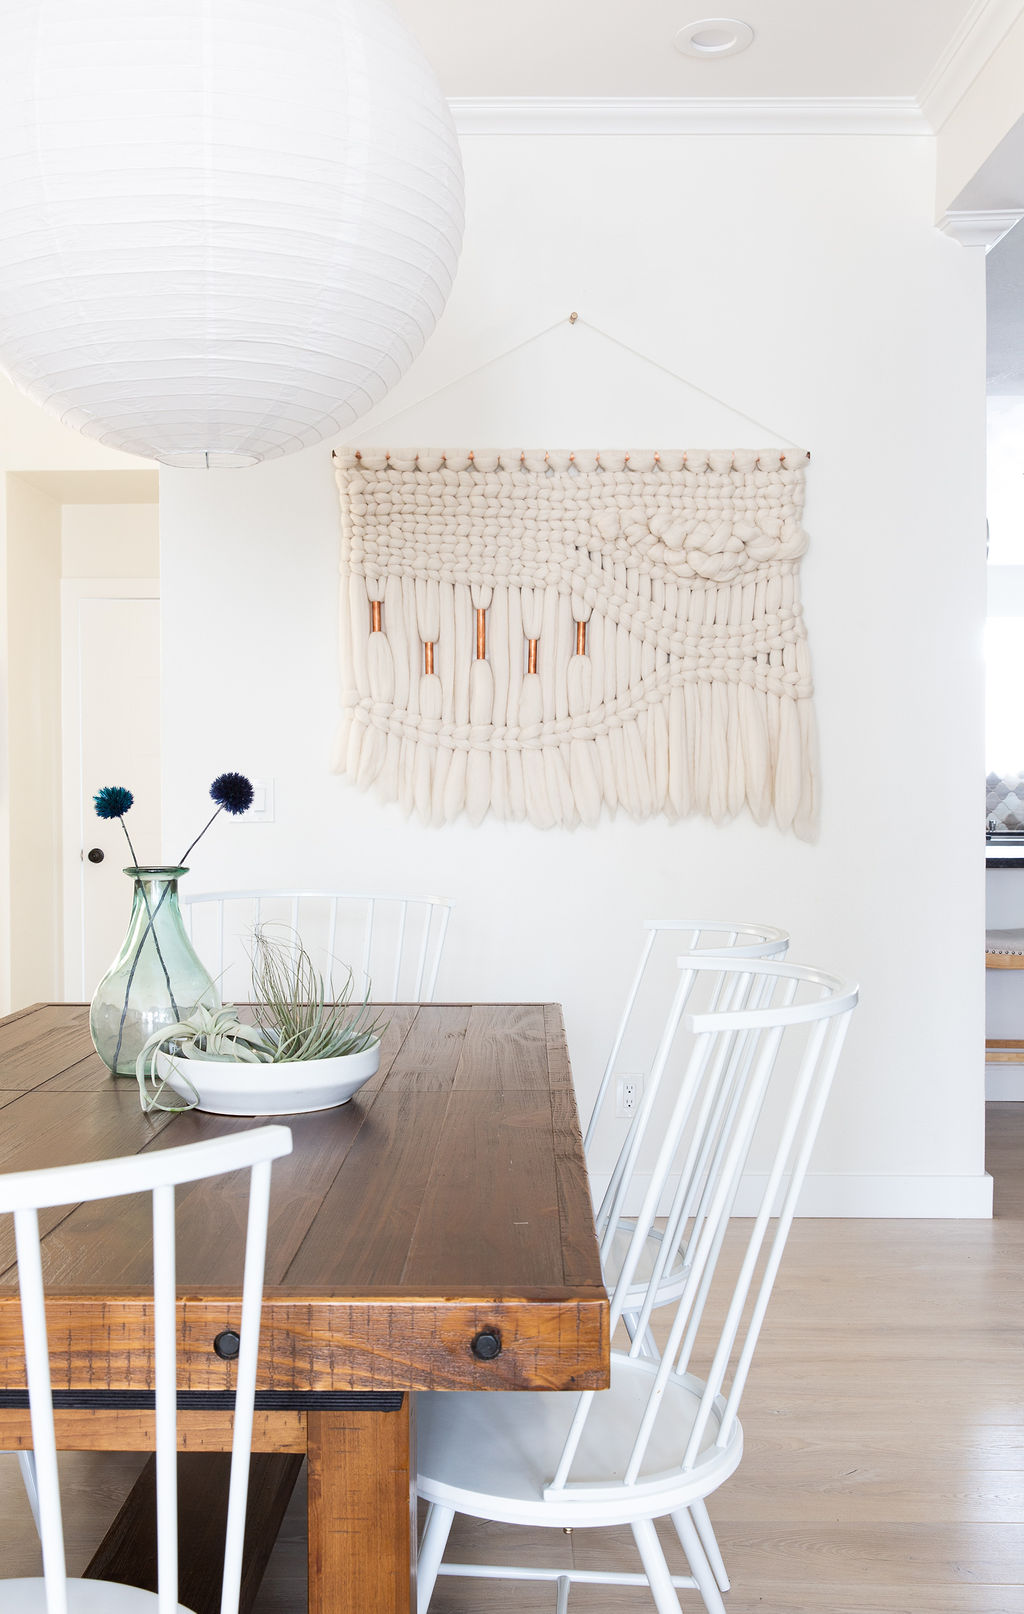 Love & Interiors_Cozy_ San Francisco_Dining Room_Farmhouse Table_Paper Pendant Light_Woven Wall Hanging_Air Plant.jpg